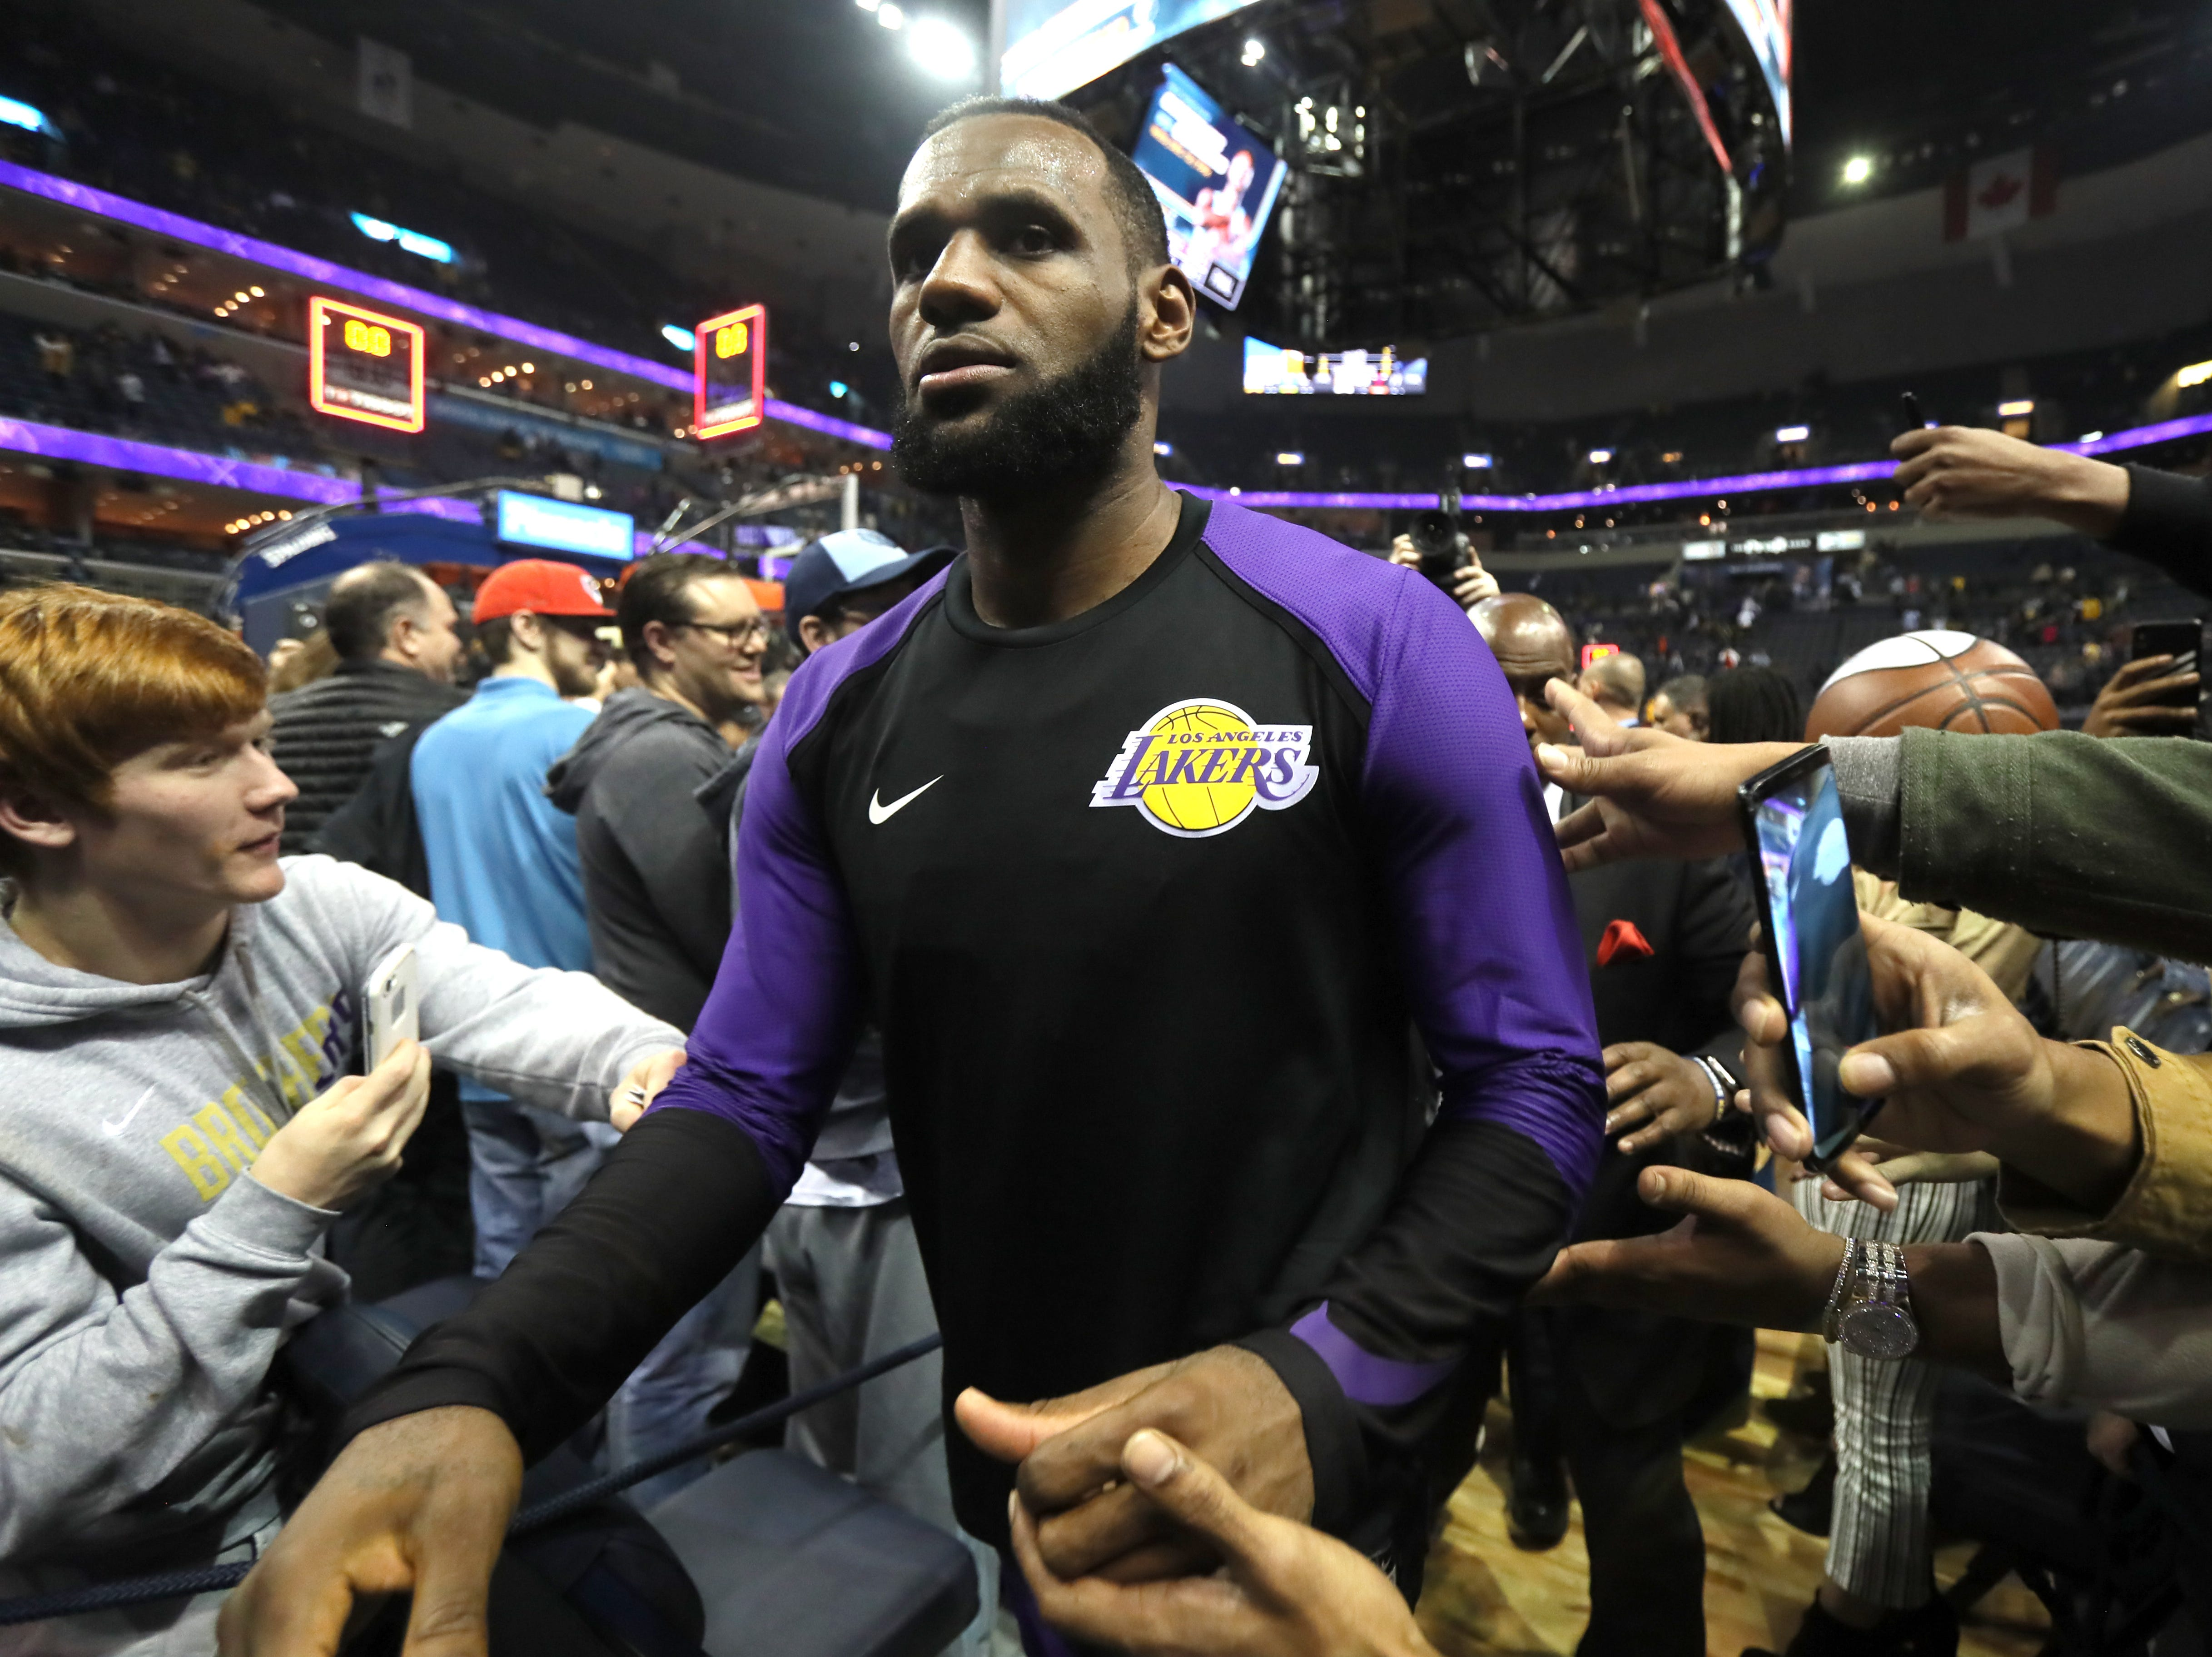 Los Angeles Lakers forward LeBron James high-fives fans as he walks off the FedExForum floor after beating the Memphis Grizzlies on Saturday, Dec. 8, 2018.